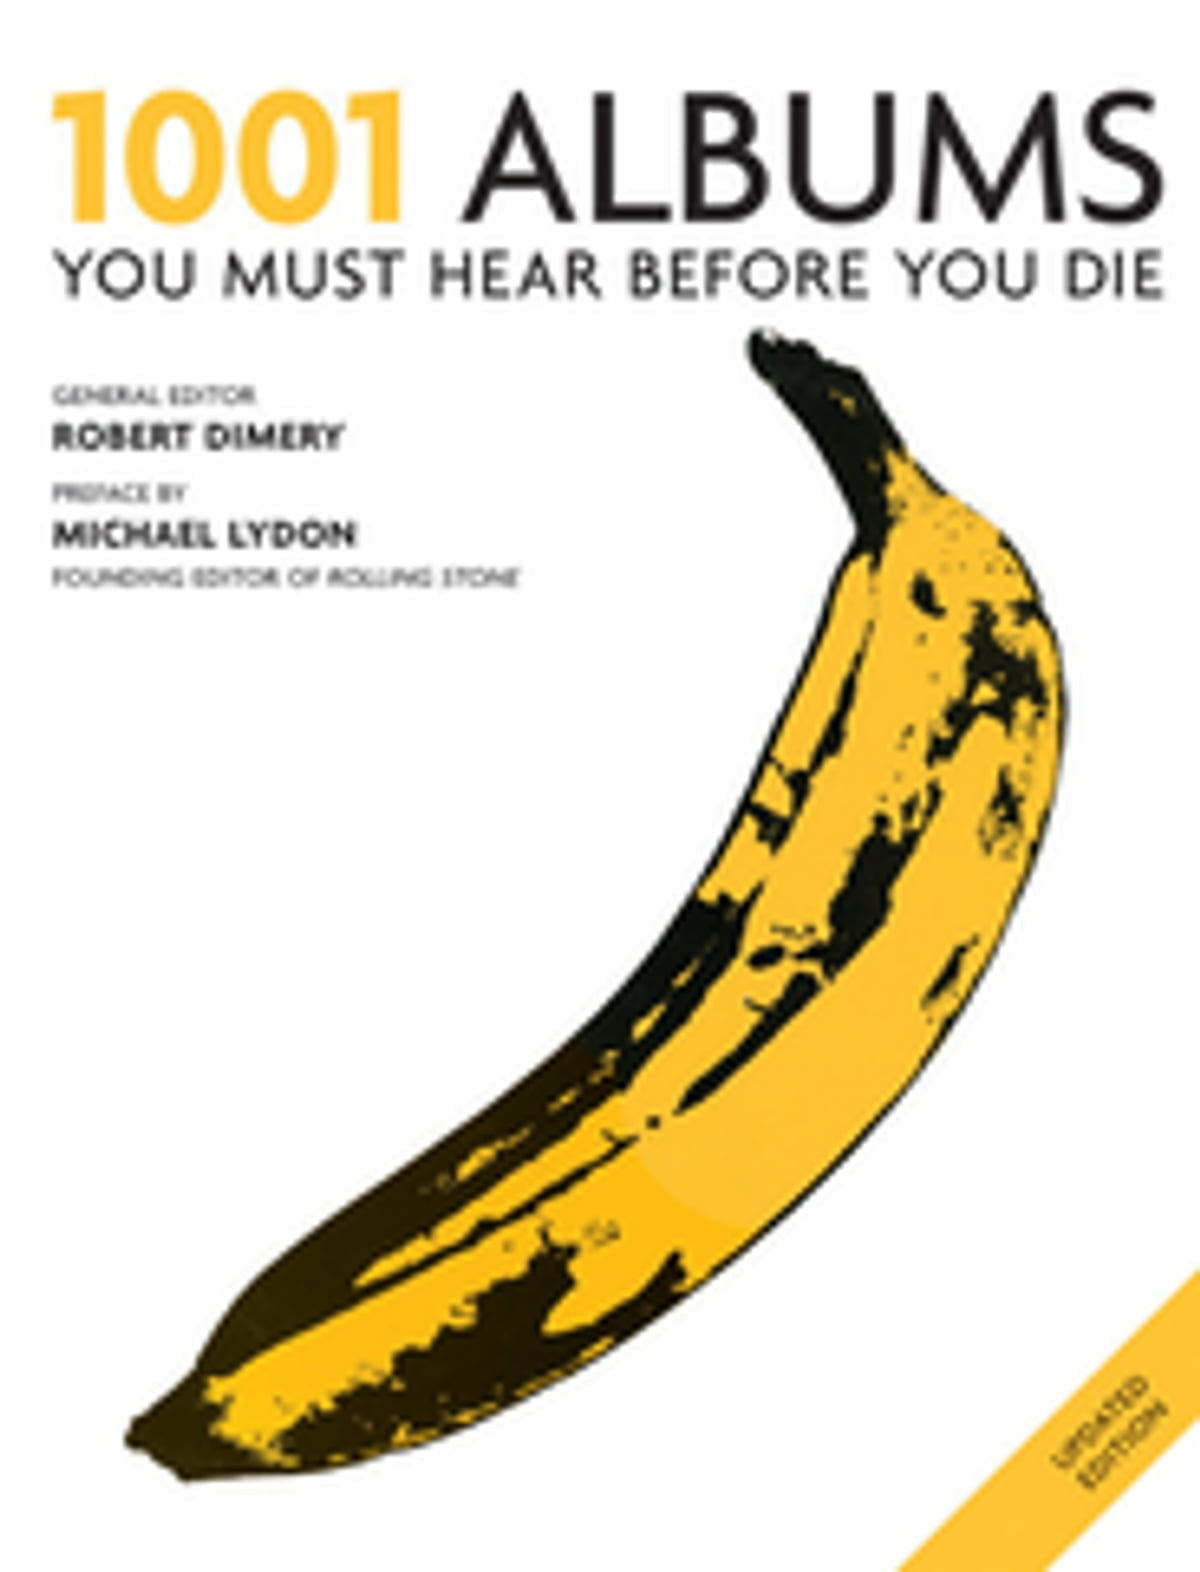 1001 Albums You Must Hear Before You Die eBook by Robert Dimery -  9781844037148 | Rakuten Kobo